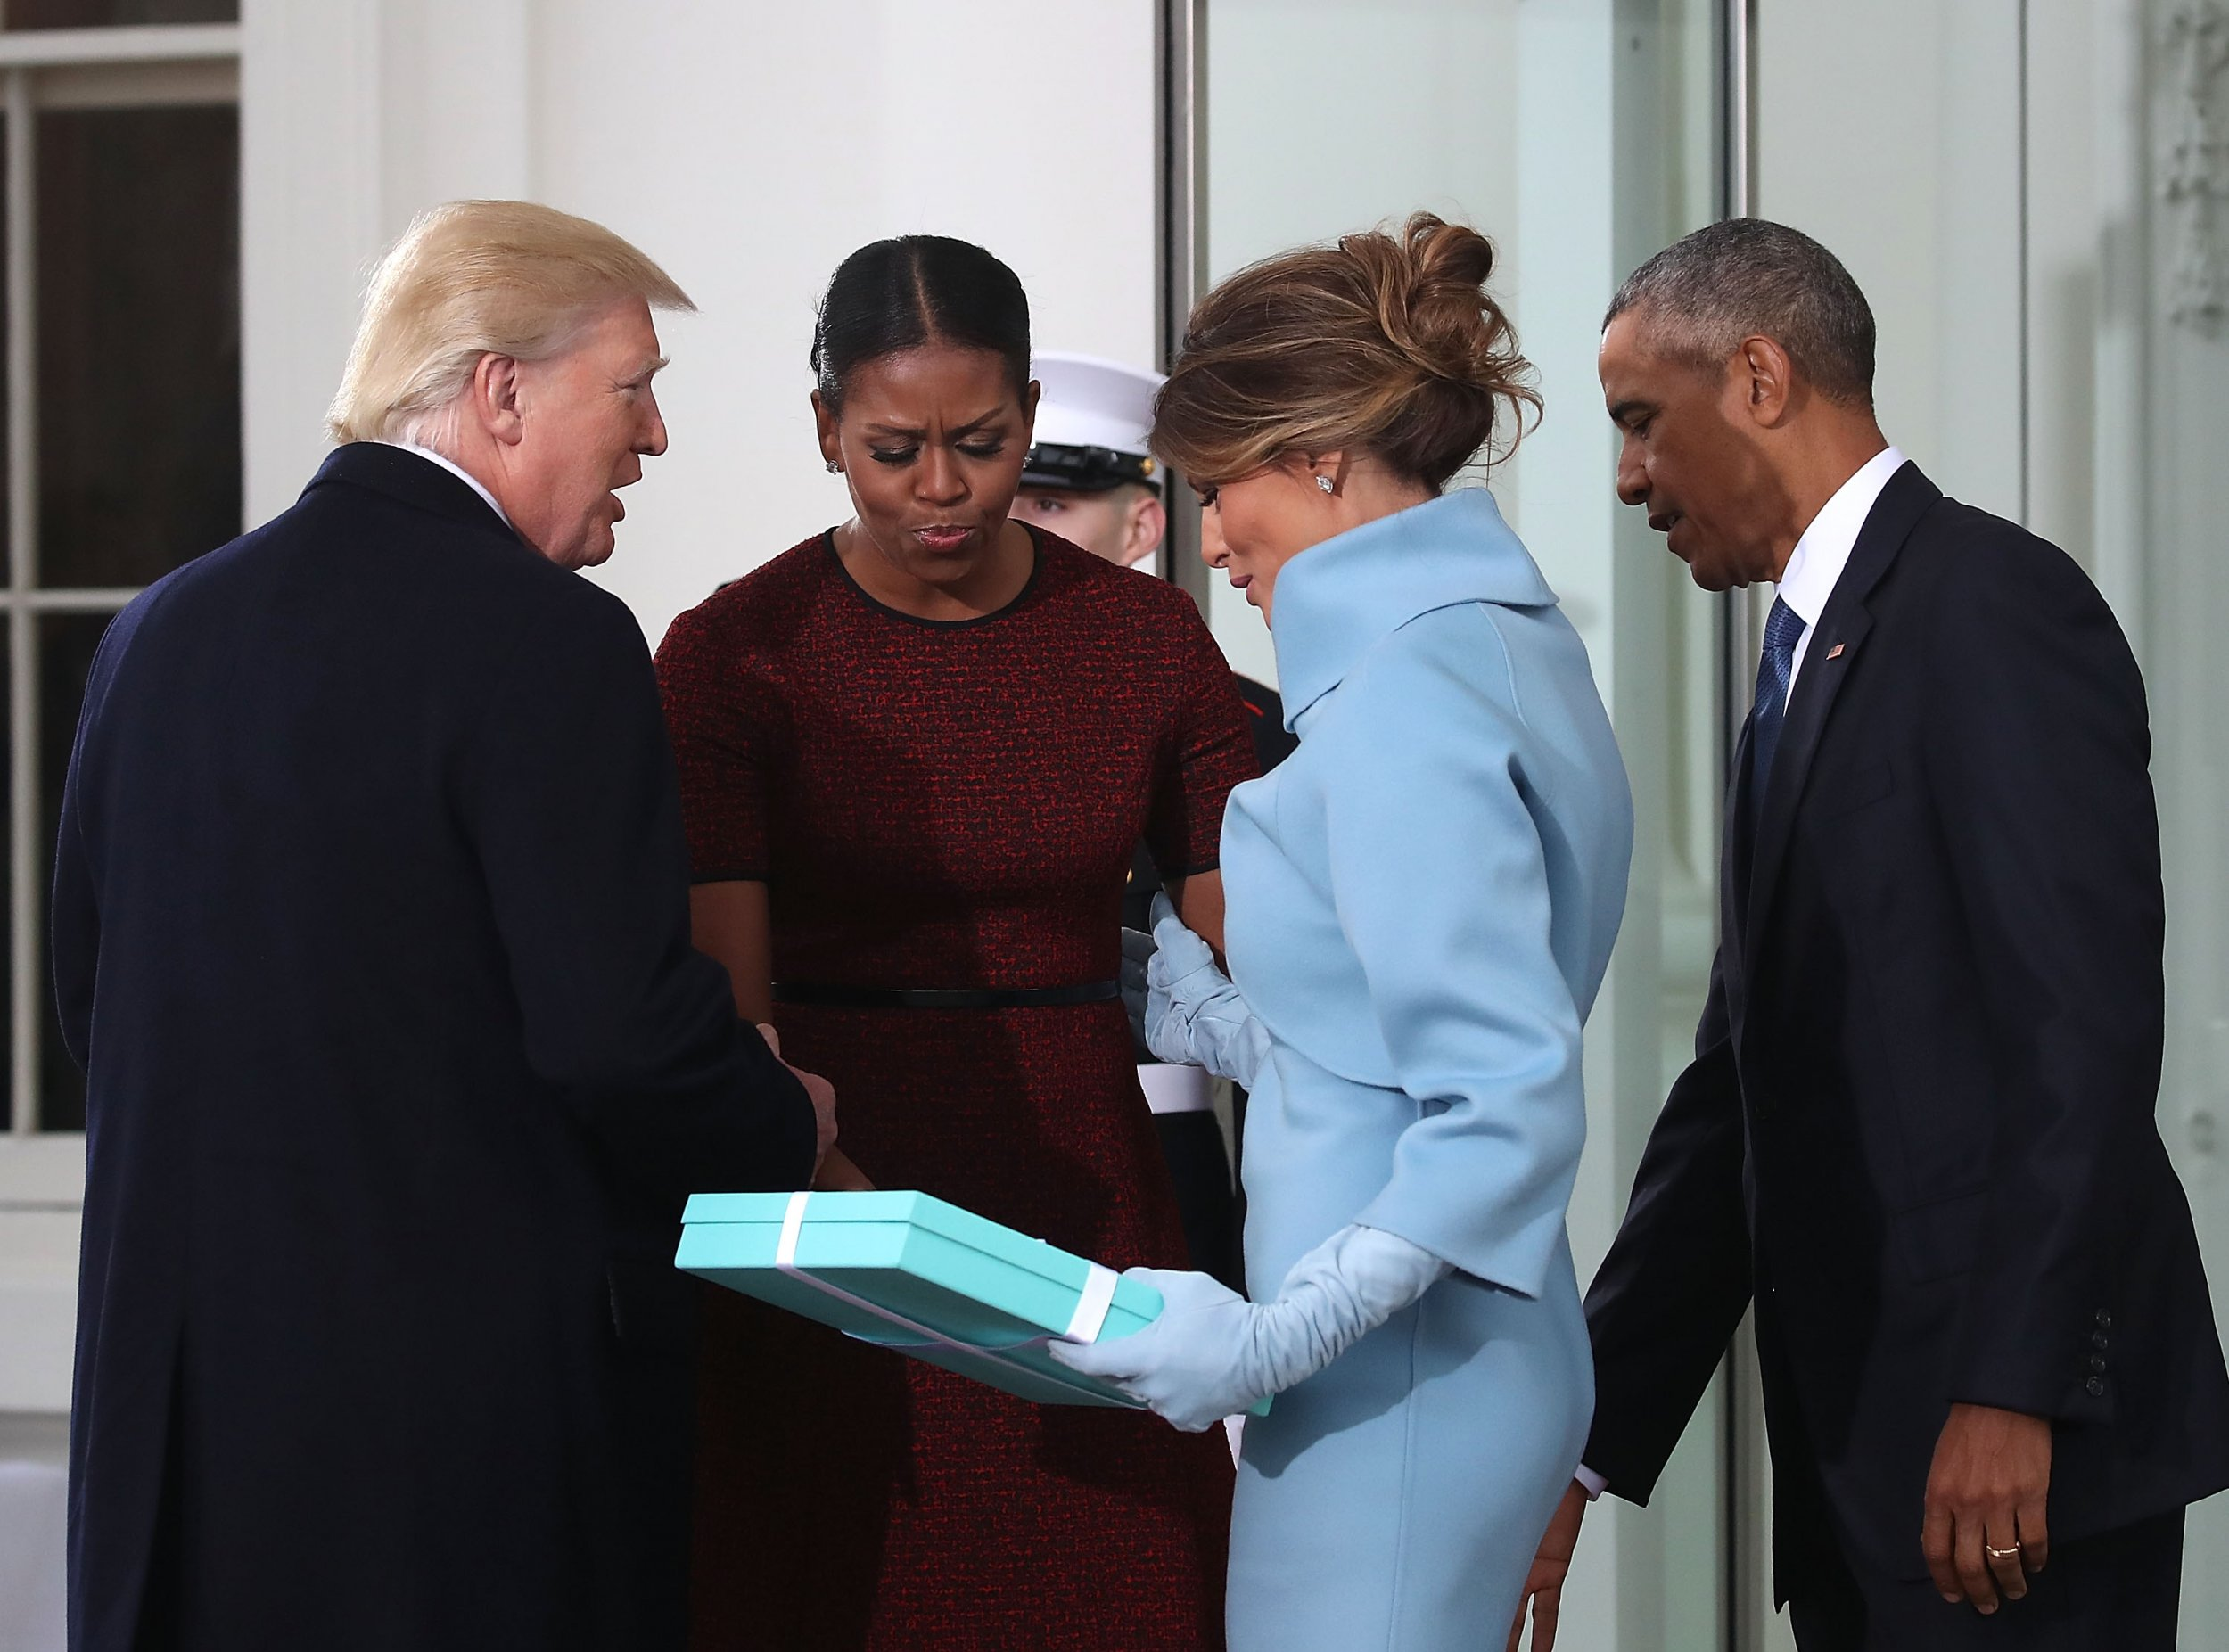 Melania Trump gives Michelle Obama a Tiffany box